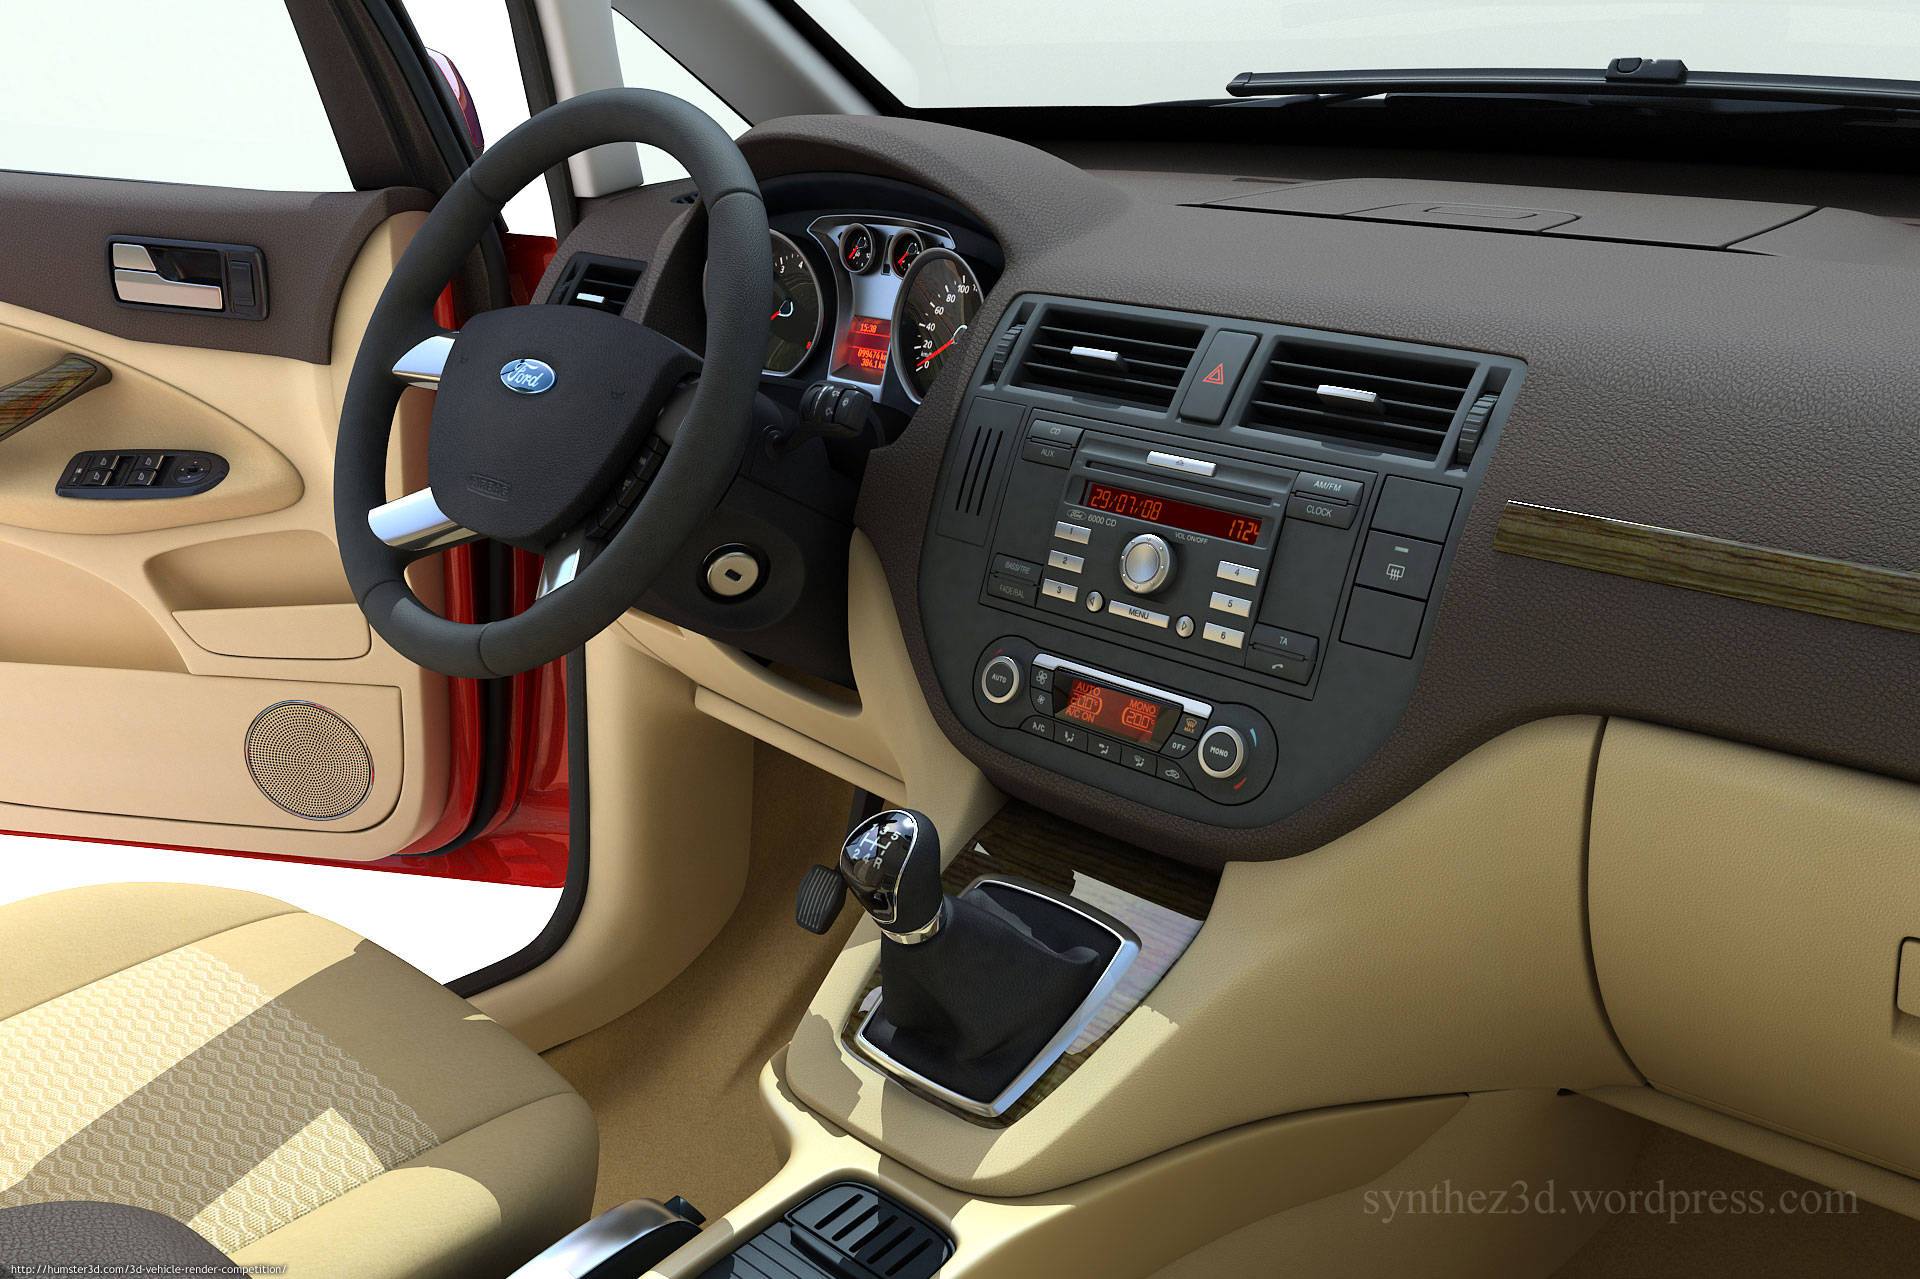 Interior of Ford C-Max